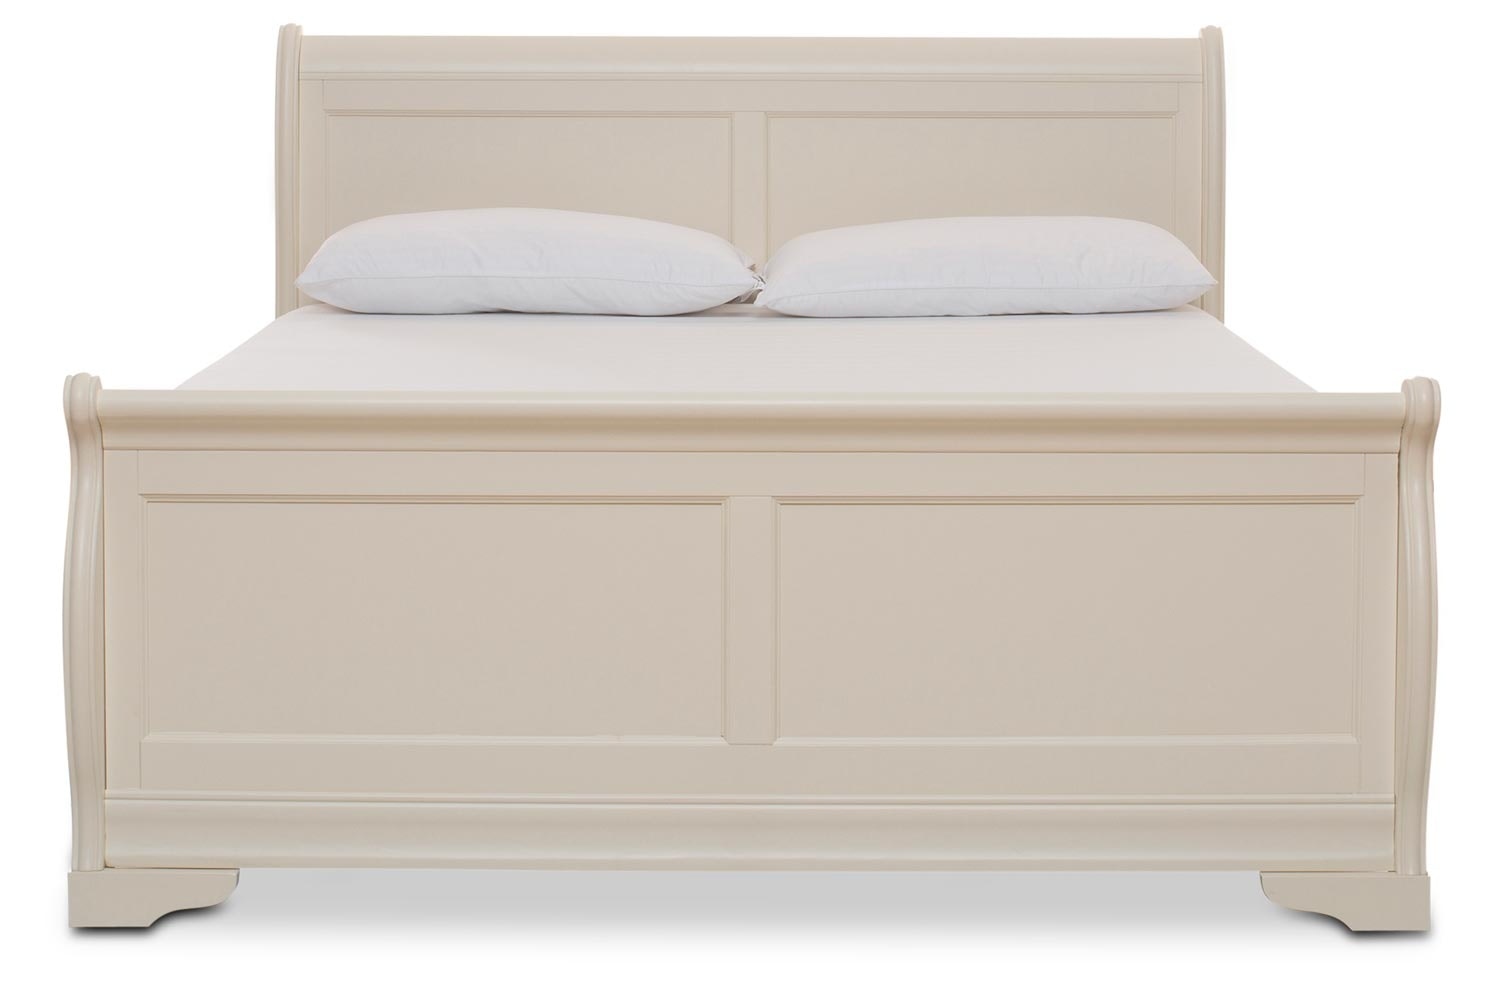 Chantelle Bed Frame | 4ft6 | Creme